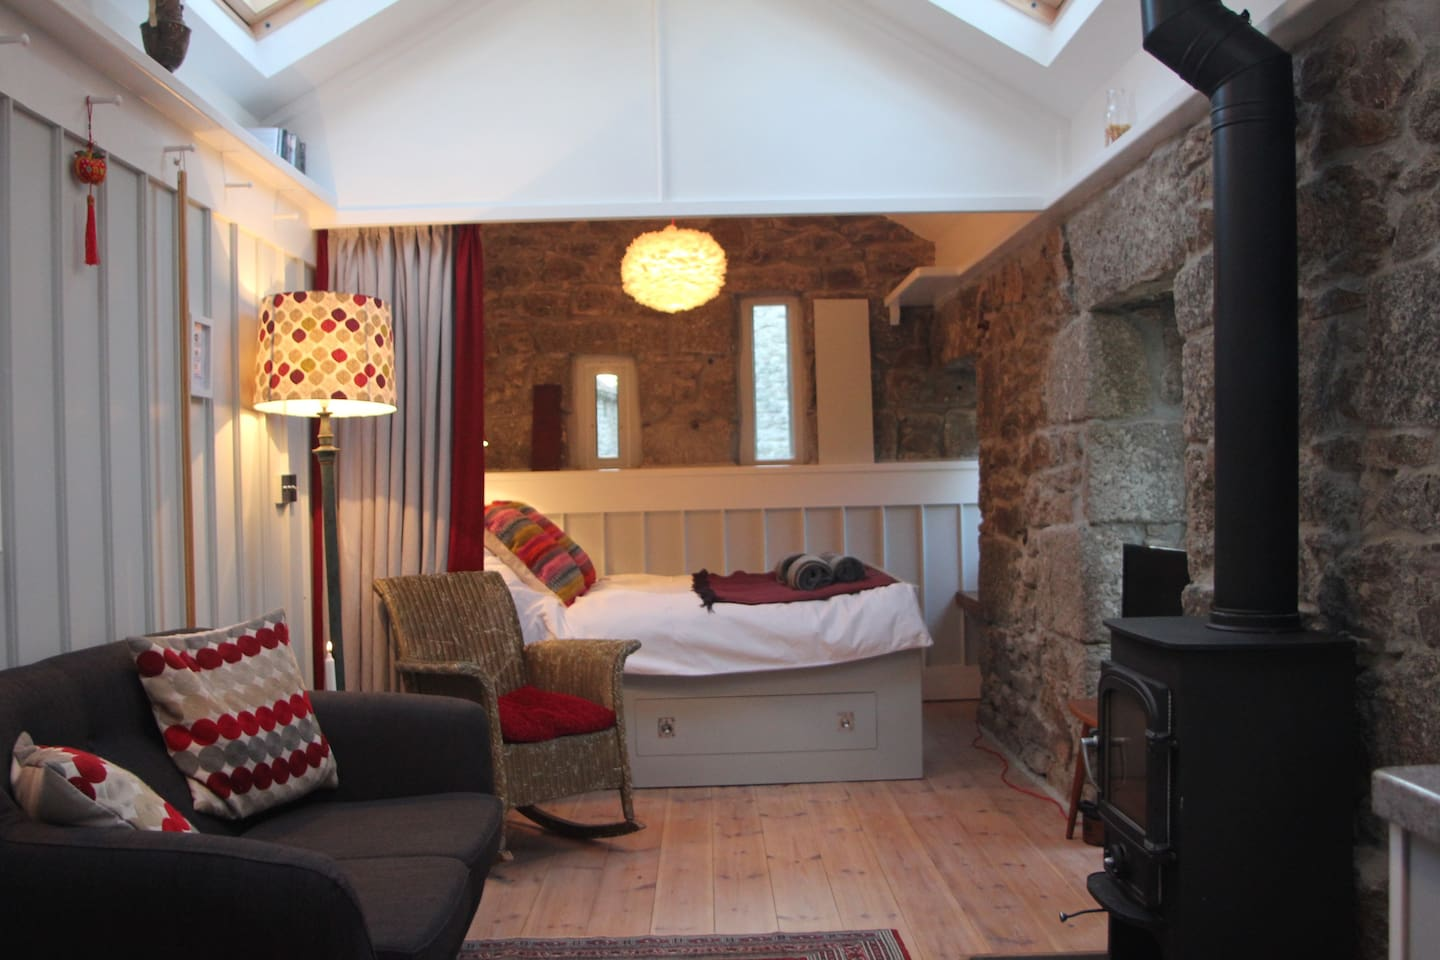 The Studio Interior - large double bed with a curtain to separate it from the living room